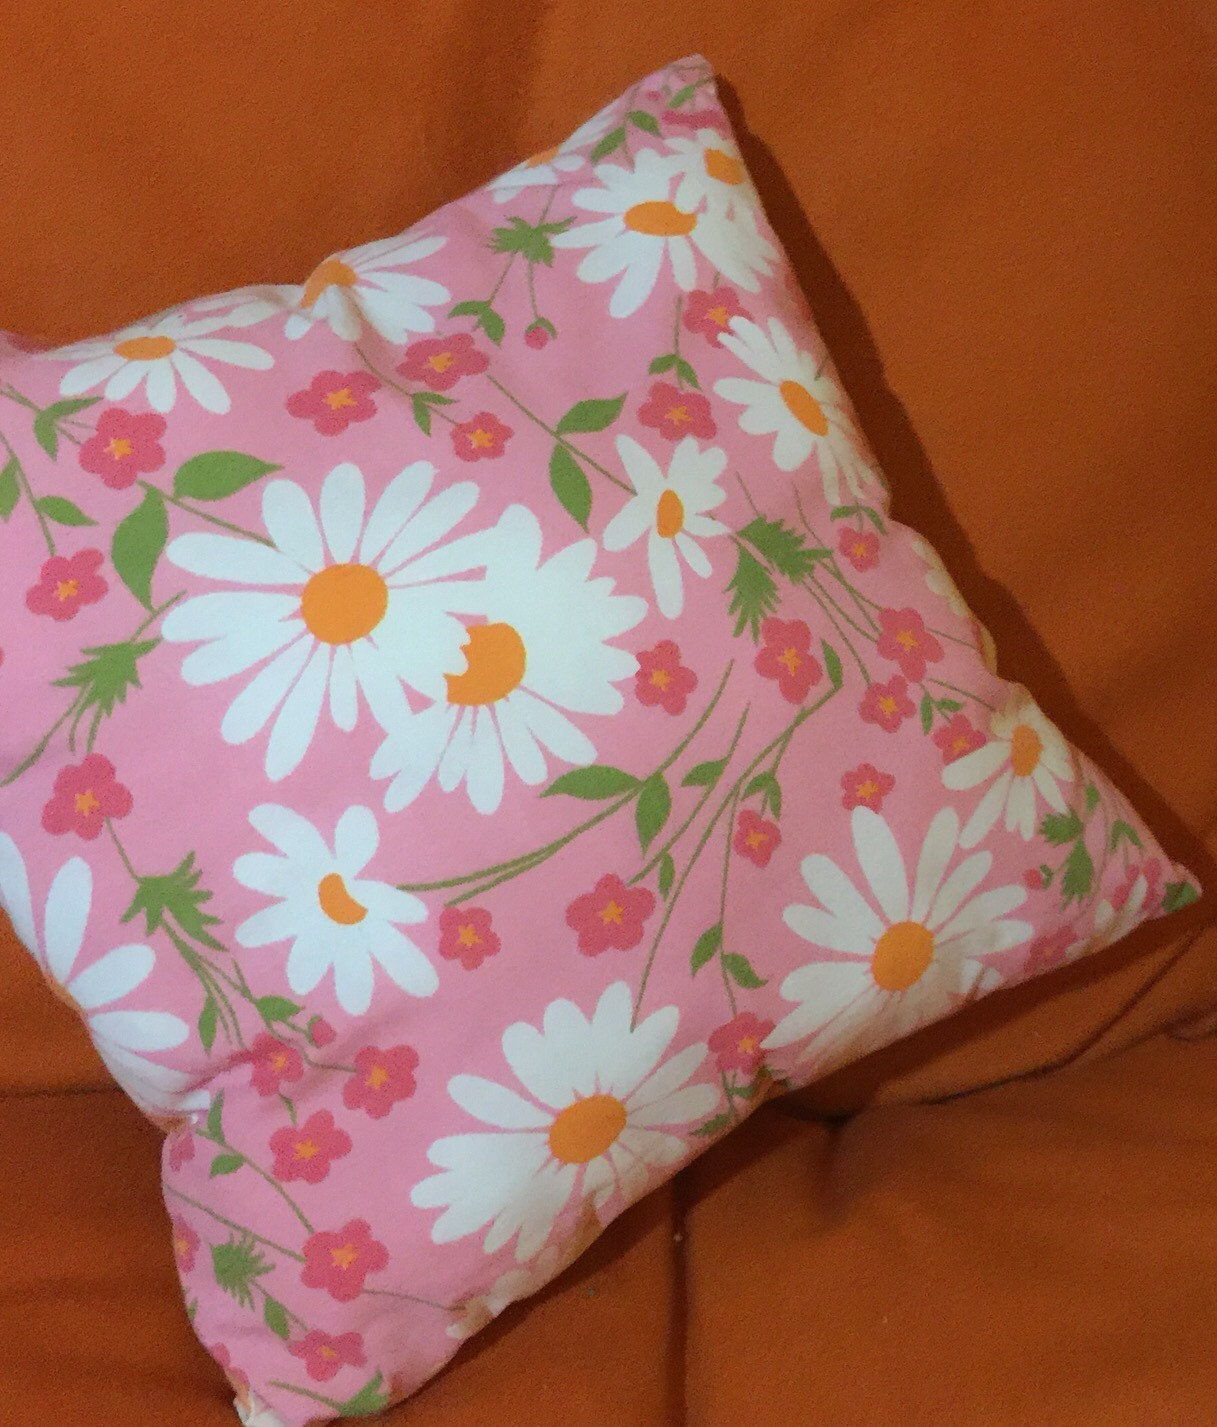 SALE Bright pink & orange double-sided daisy throw pillow / 70s retro decor accent pillow ...